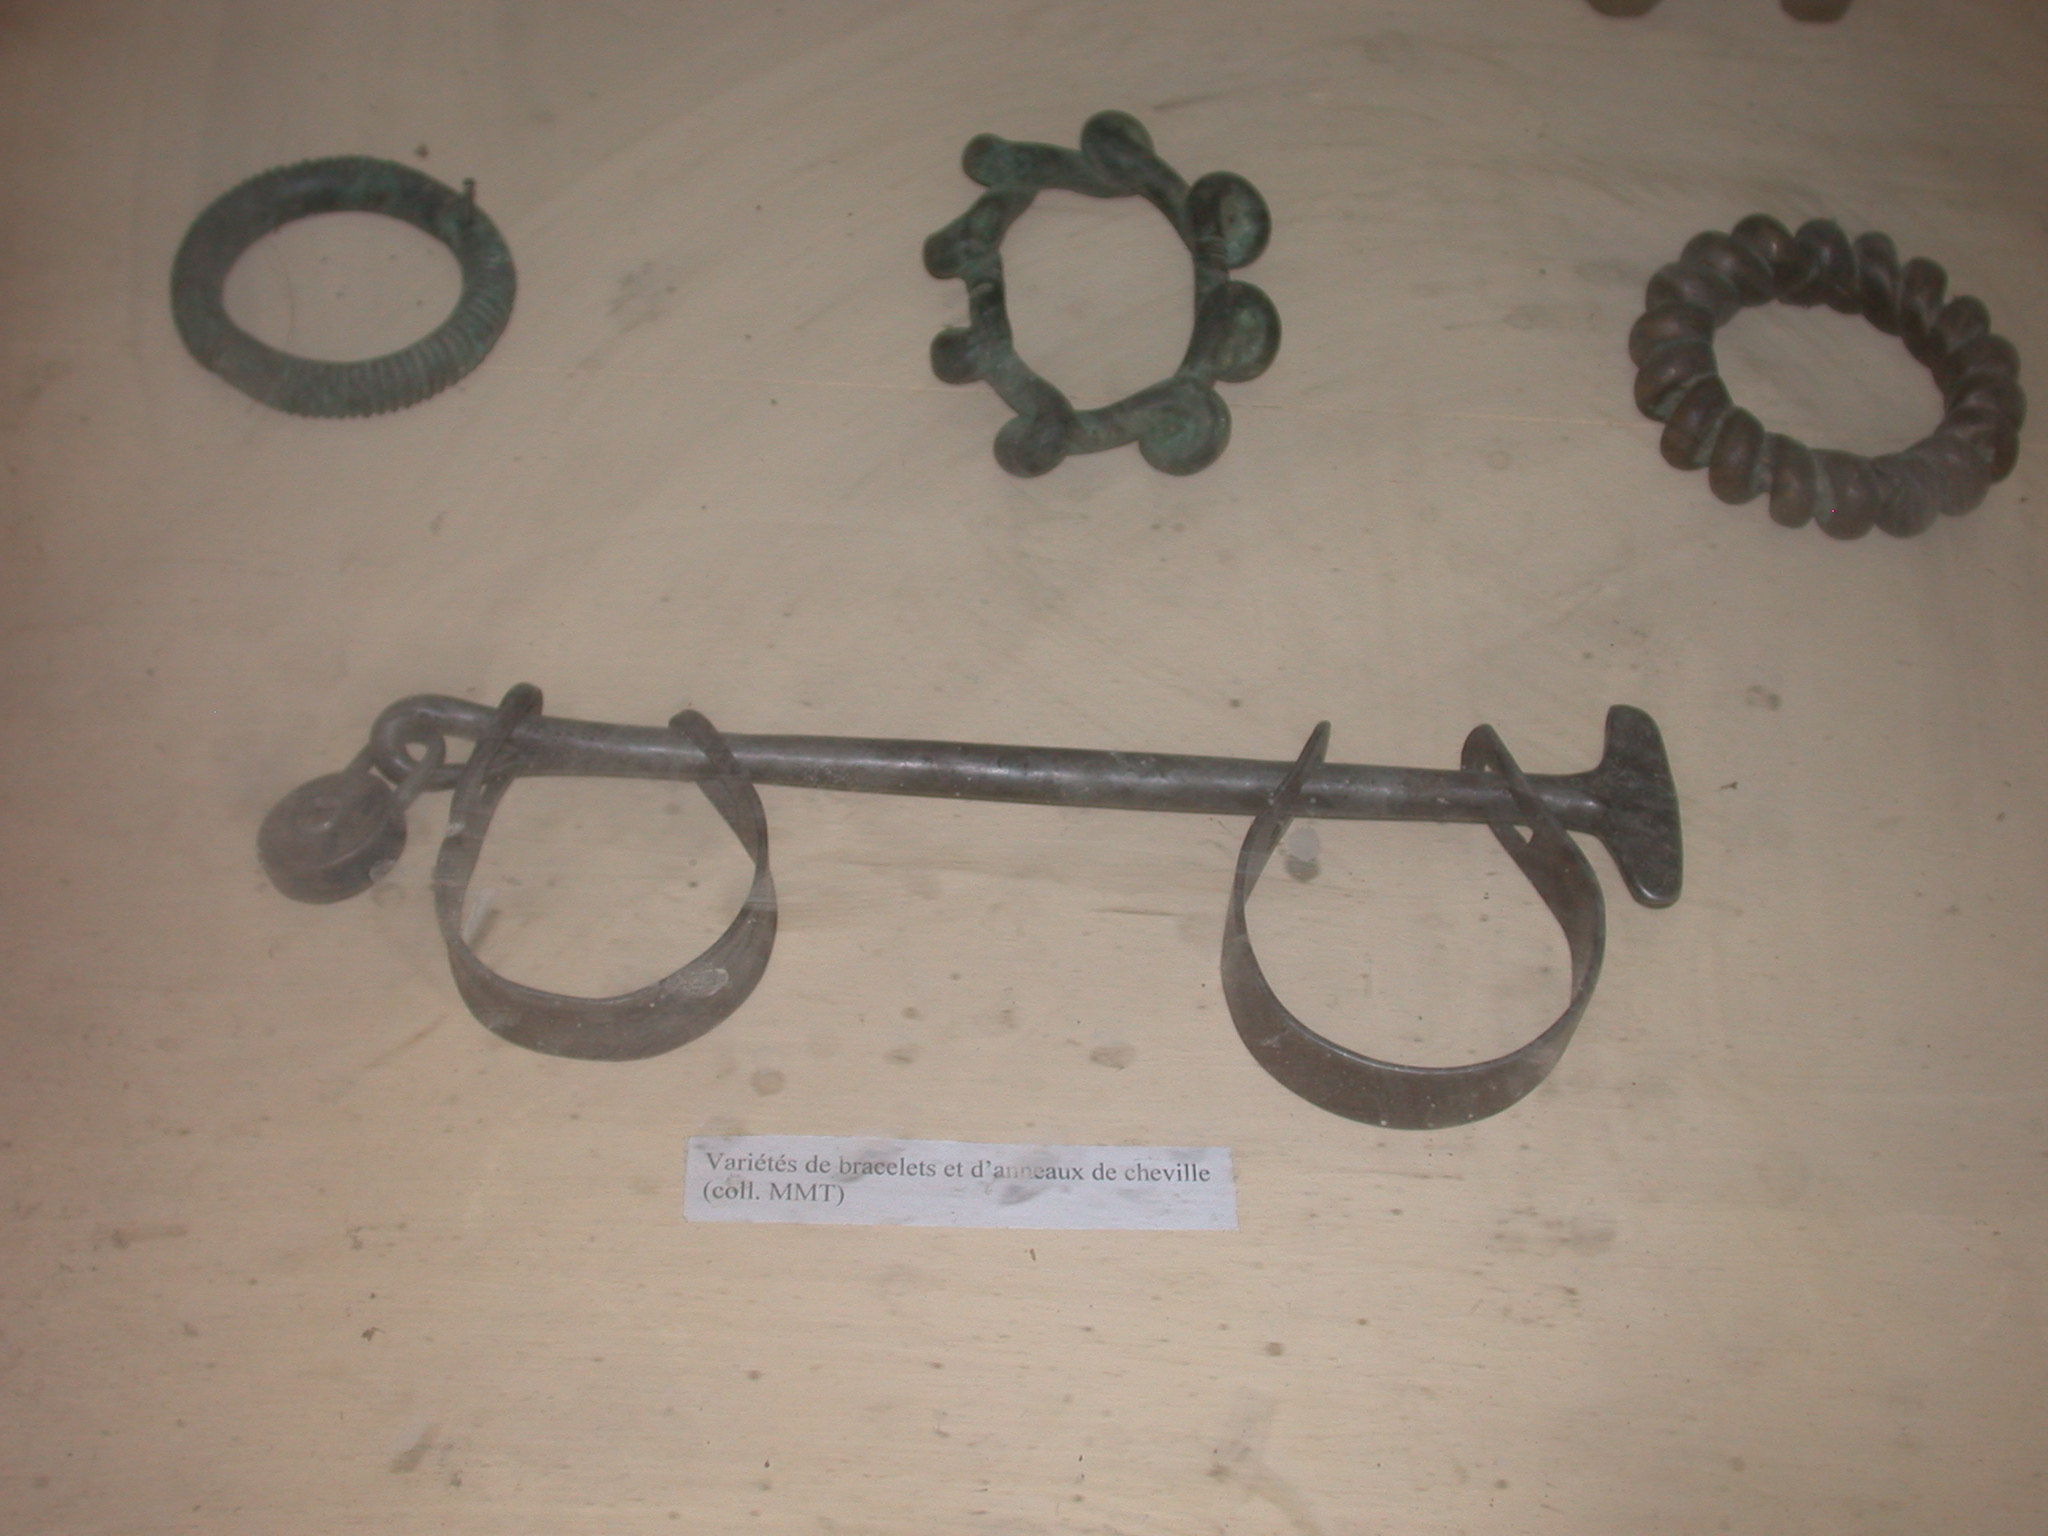 Bracelets and Ankle Rings Including Possibly for Slave Shackles, Timbuktu Ethnological Museum, Timbuktu, Mali